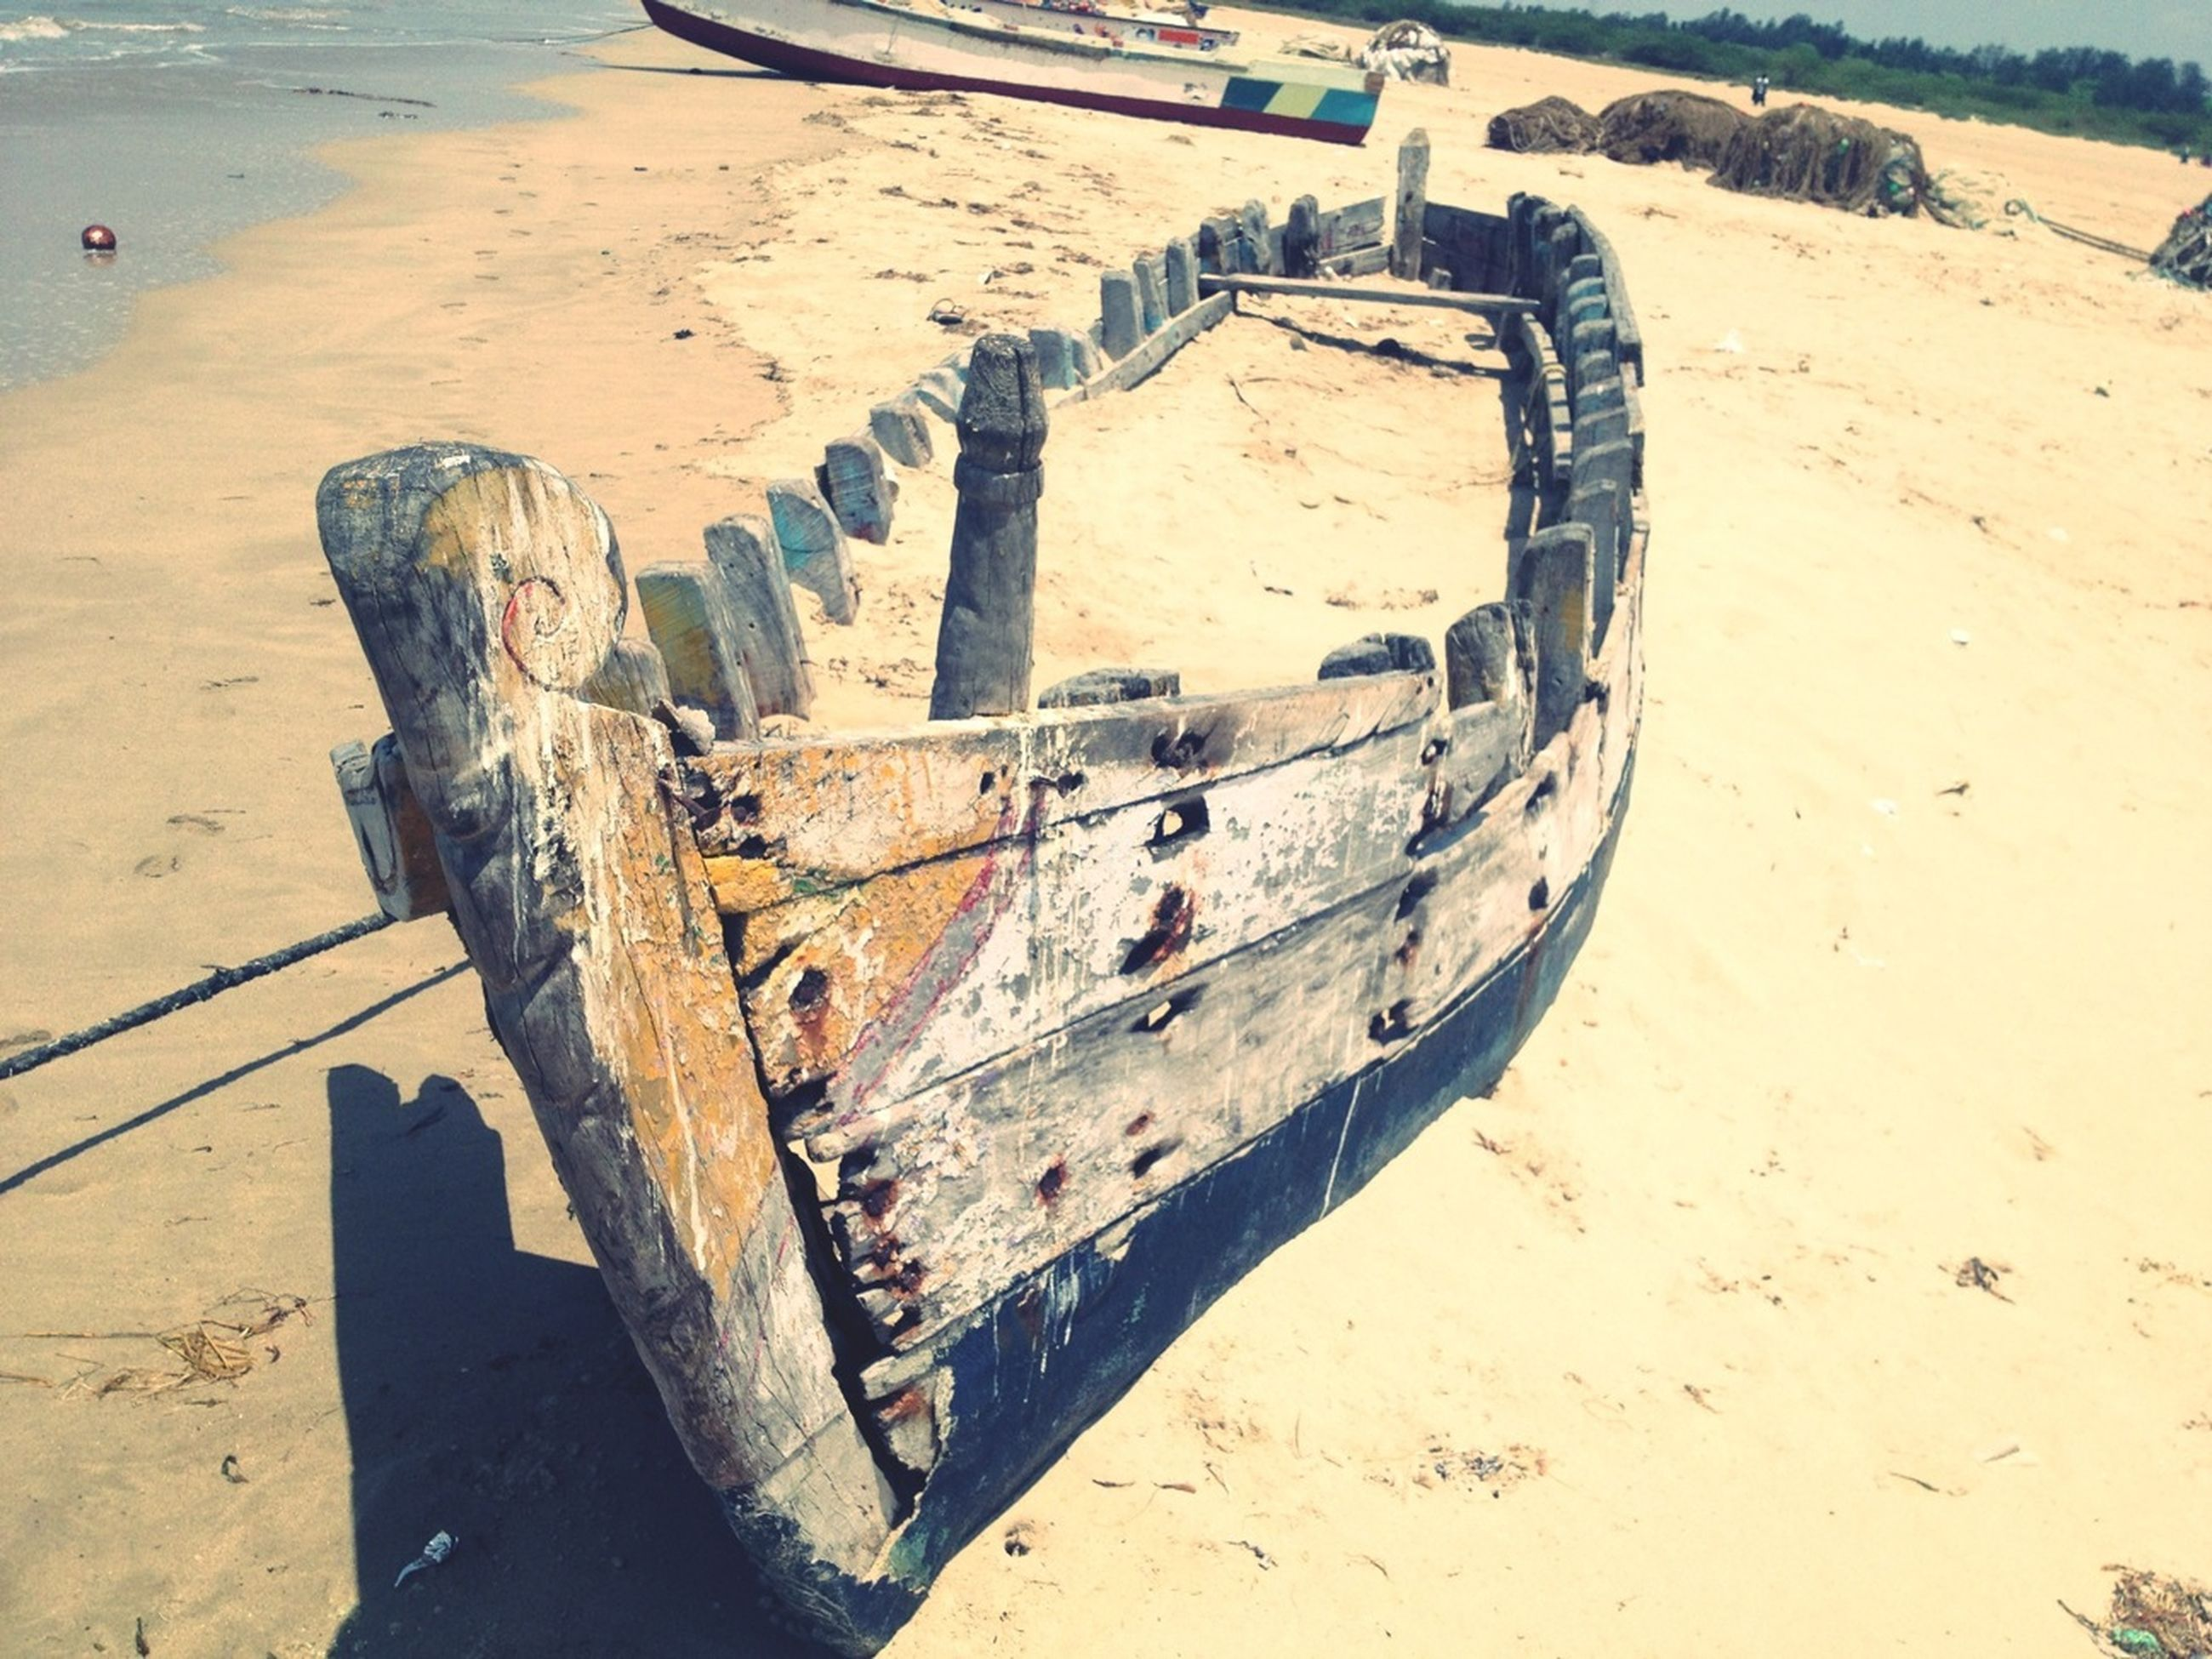 sand, beach, transportation, mode of transport, water, shore, abandoned, nautical vessel, sea, boat, obsolete, sunlight, damaged, tire, moored, wheel, travel, old, day, land vehicle